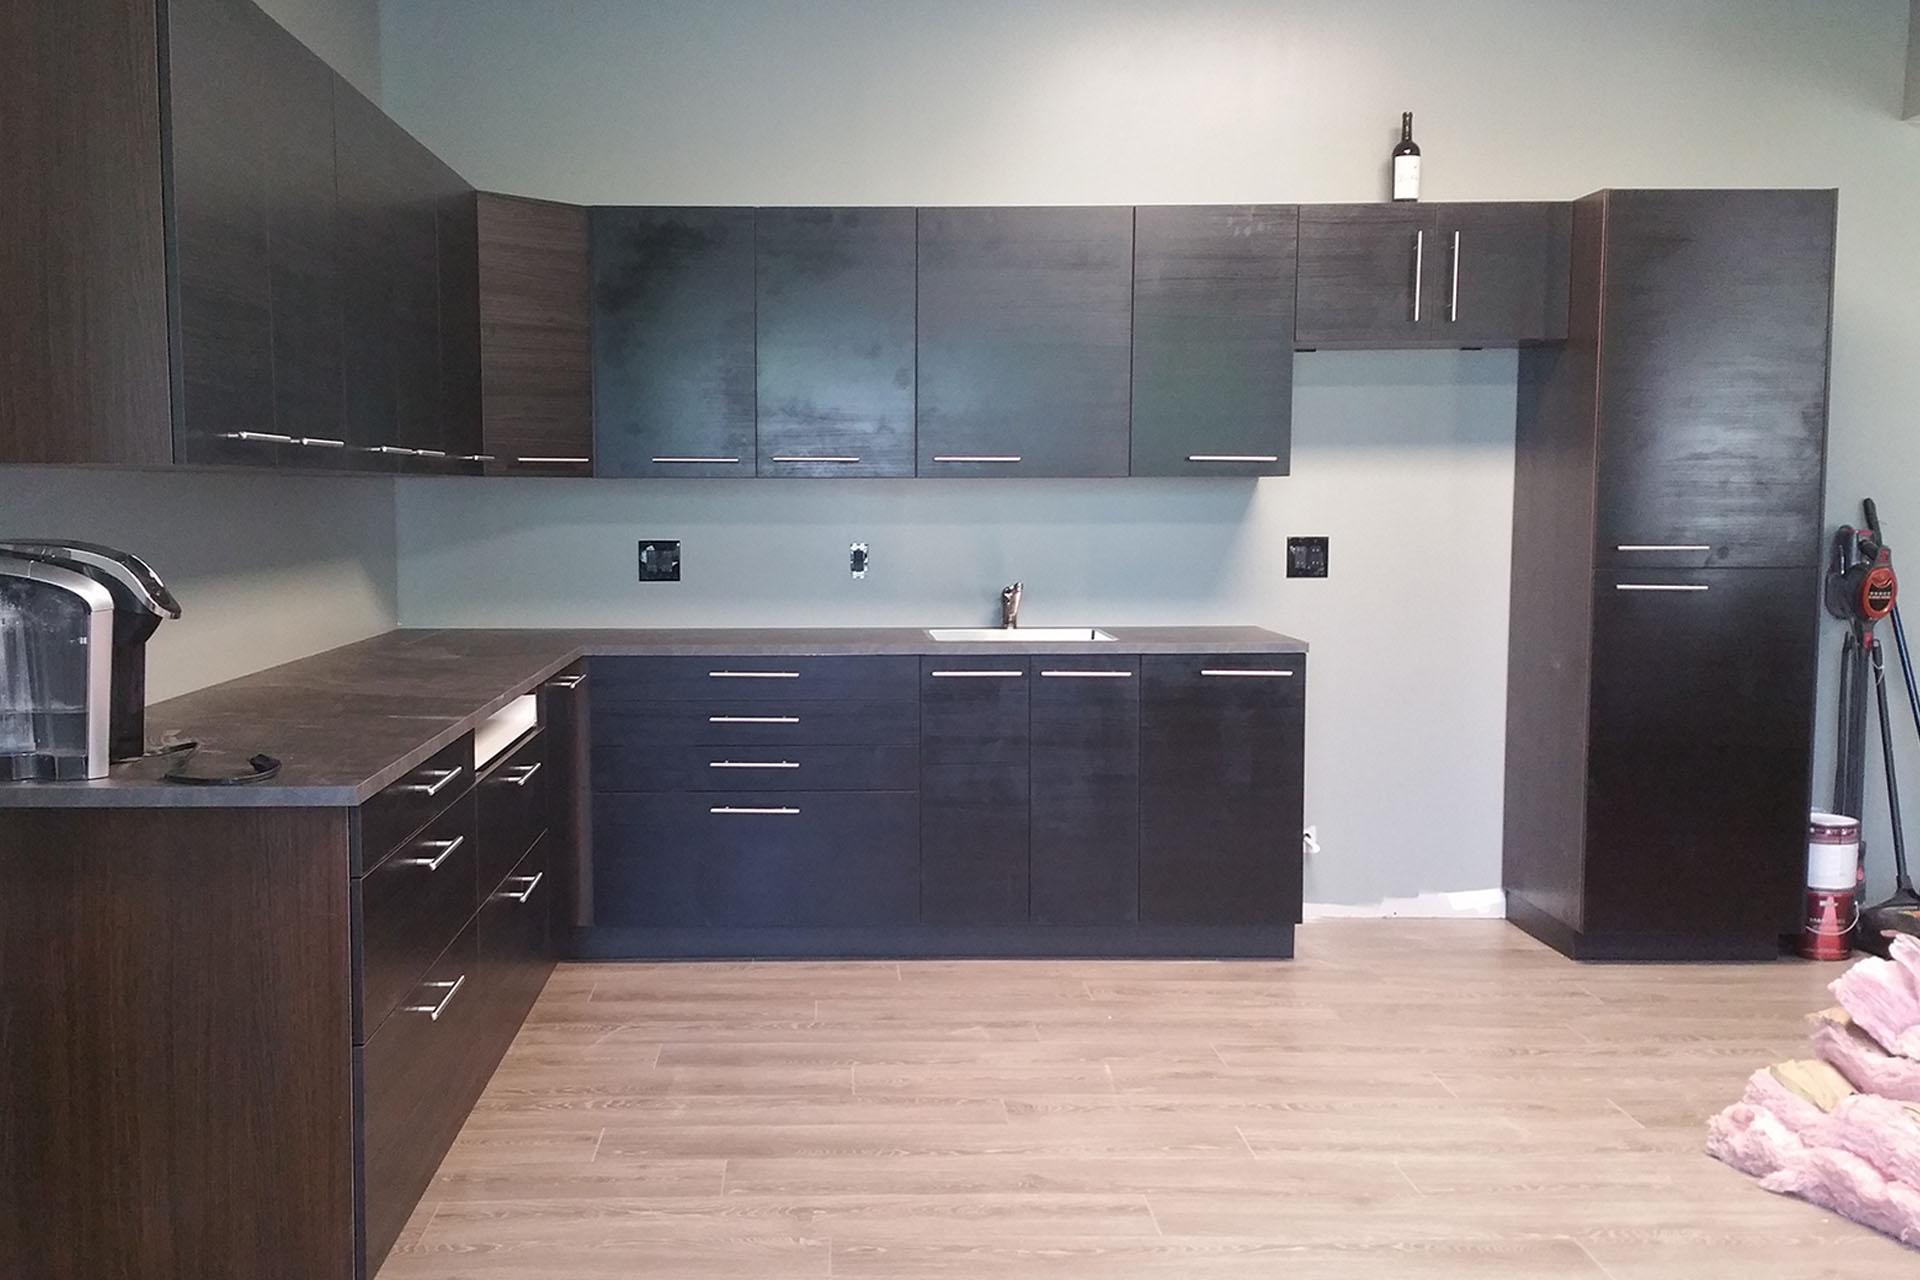 Any Assembly Installs IKEA Kitchens in Maryland Virginia and DC